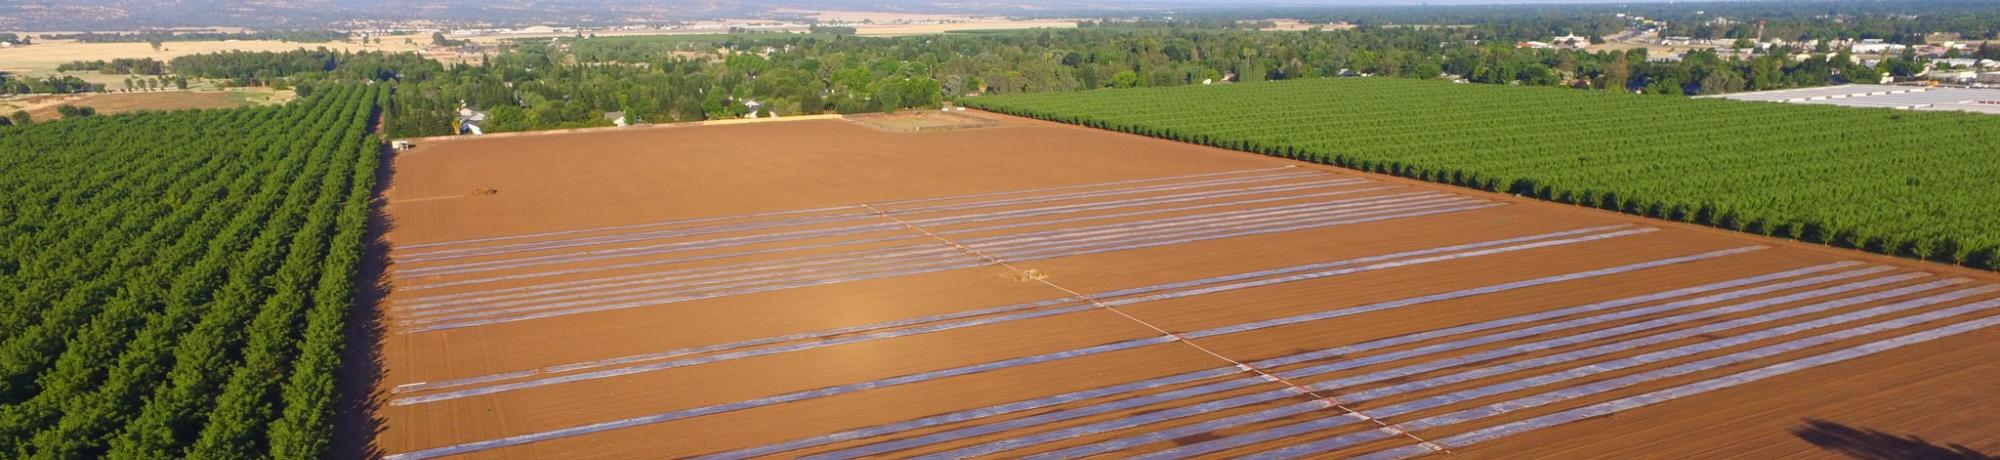 Aerial view of field with biosolarization research